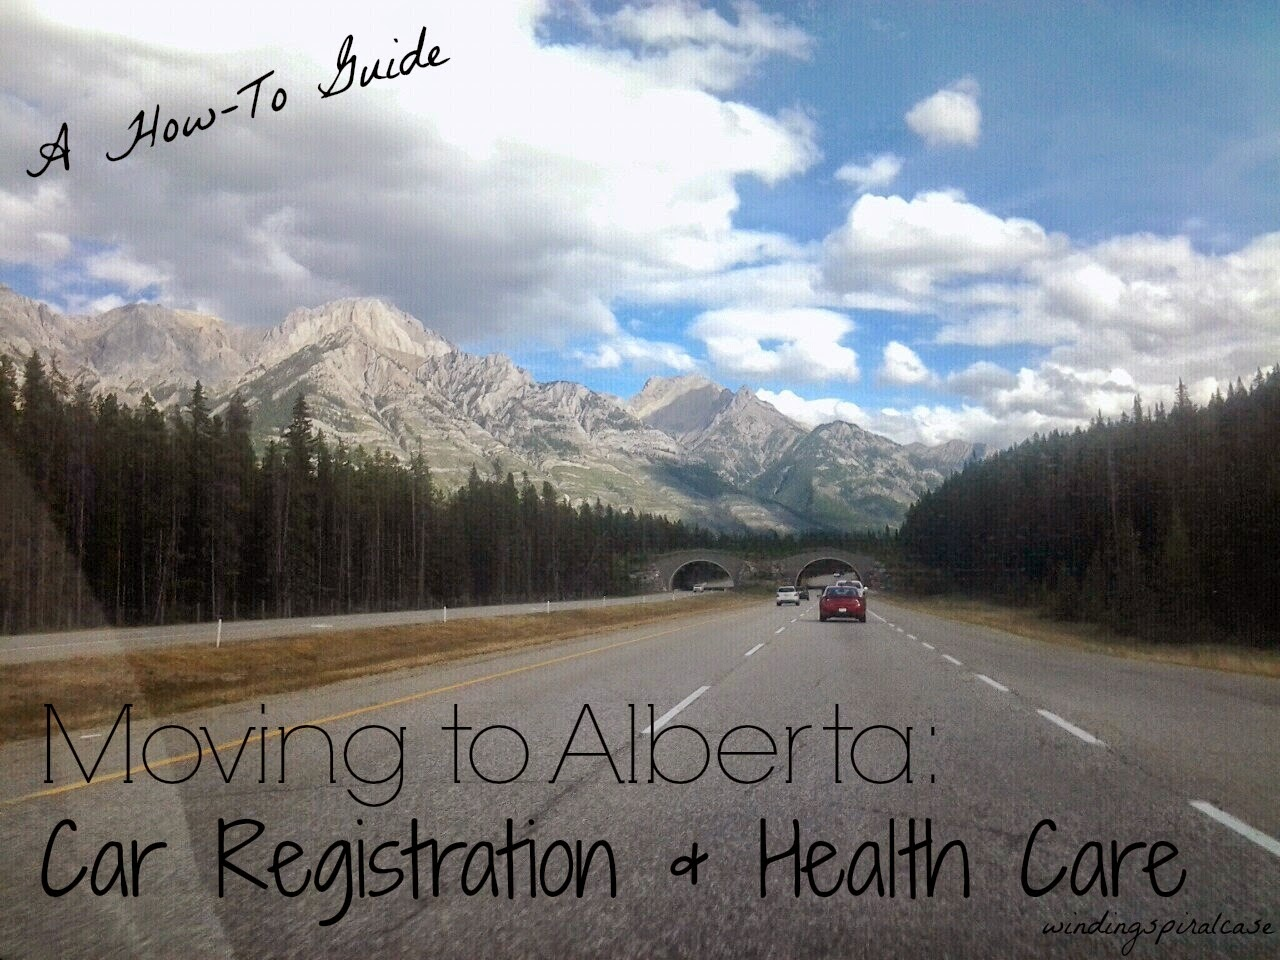 Moving Alberta How To Register Car and Health Care